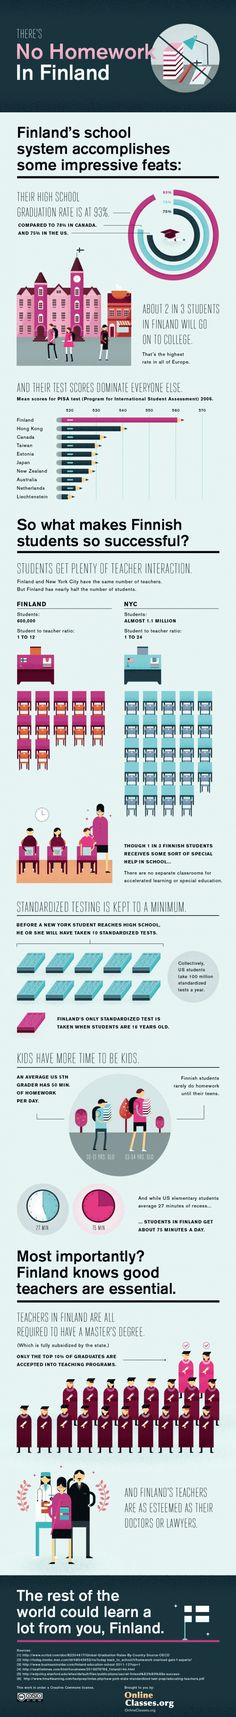 How Homework Works In Finland (Hint: There Isn't Any)